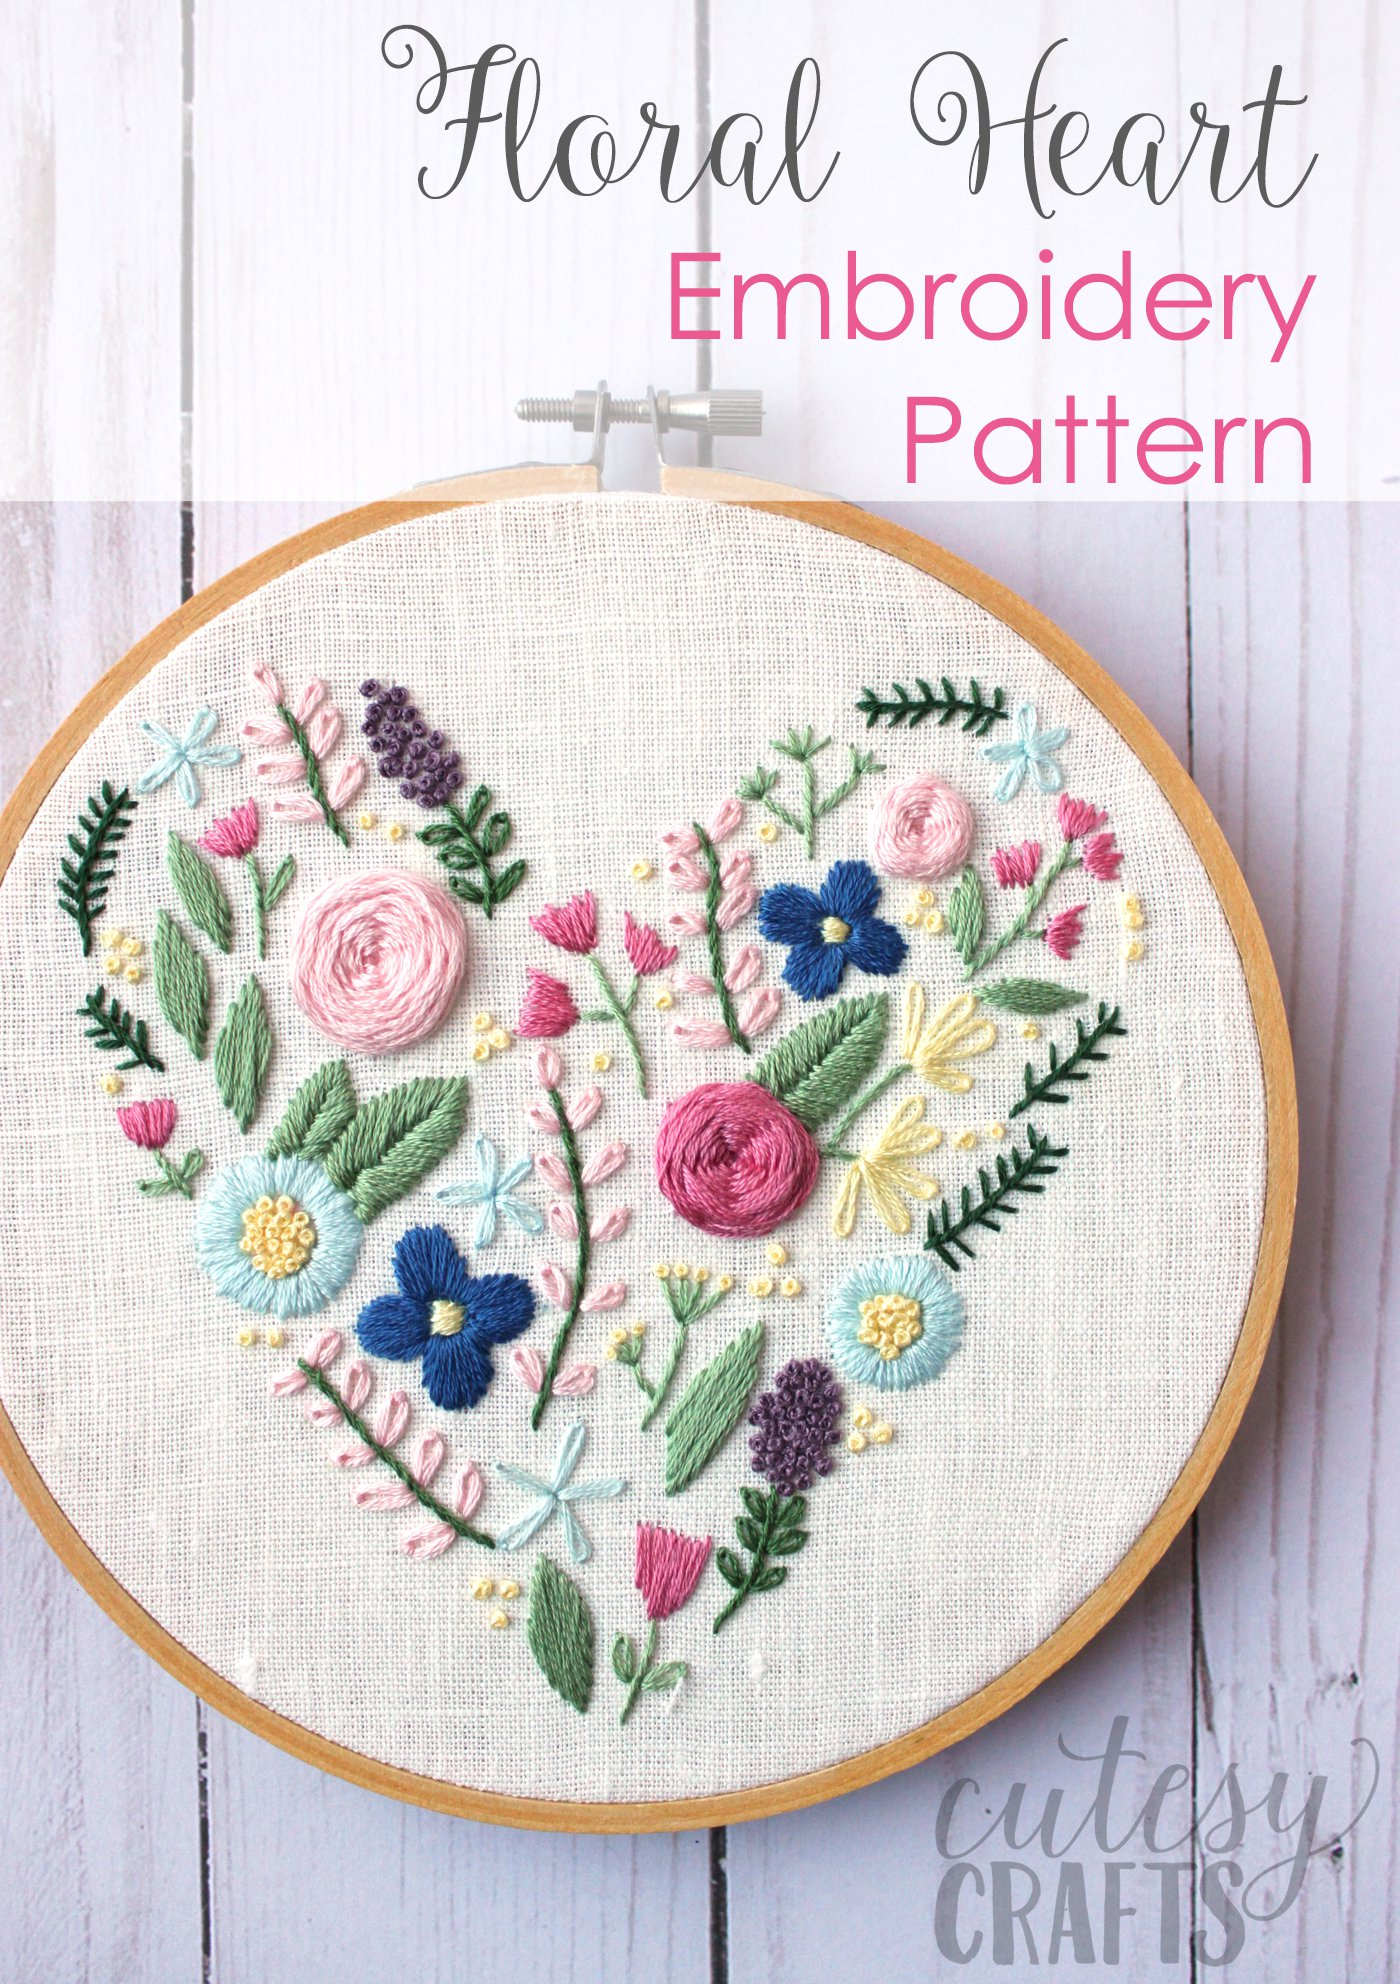 Free Hand Embroidery Pattern Floral Heart Hand Embroidery Pattern The Polka Dot Chair